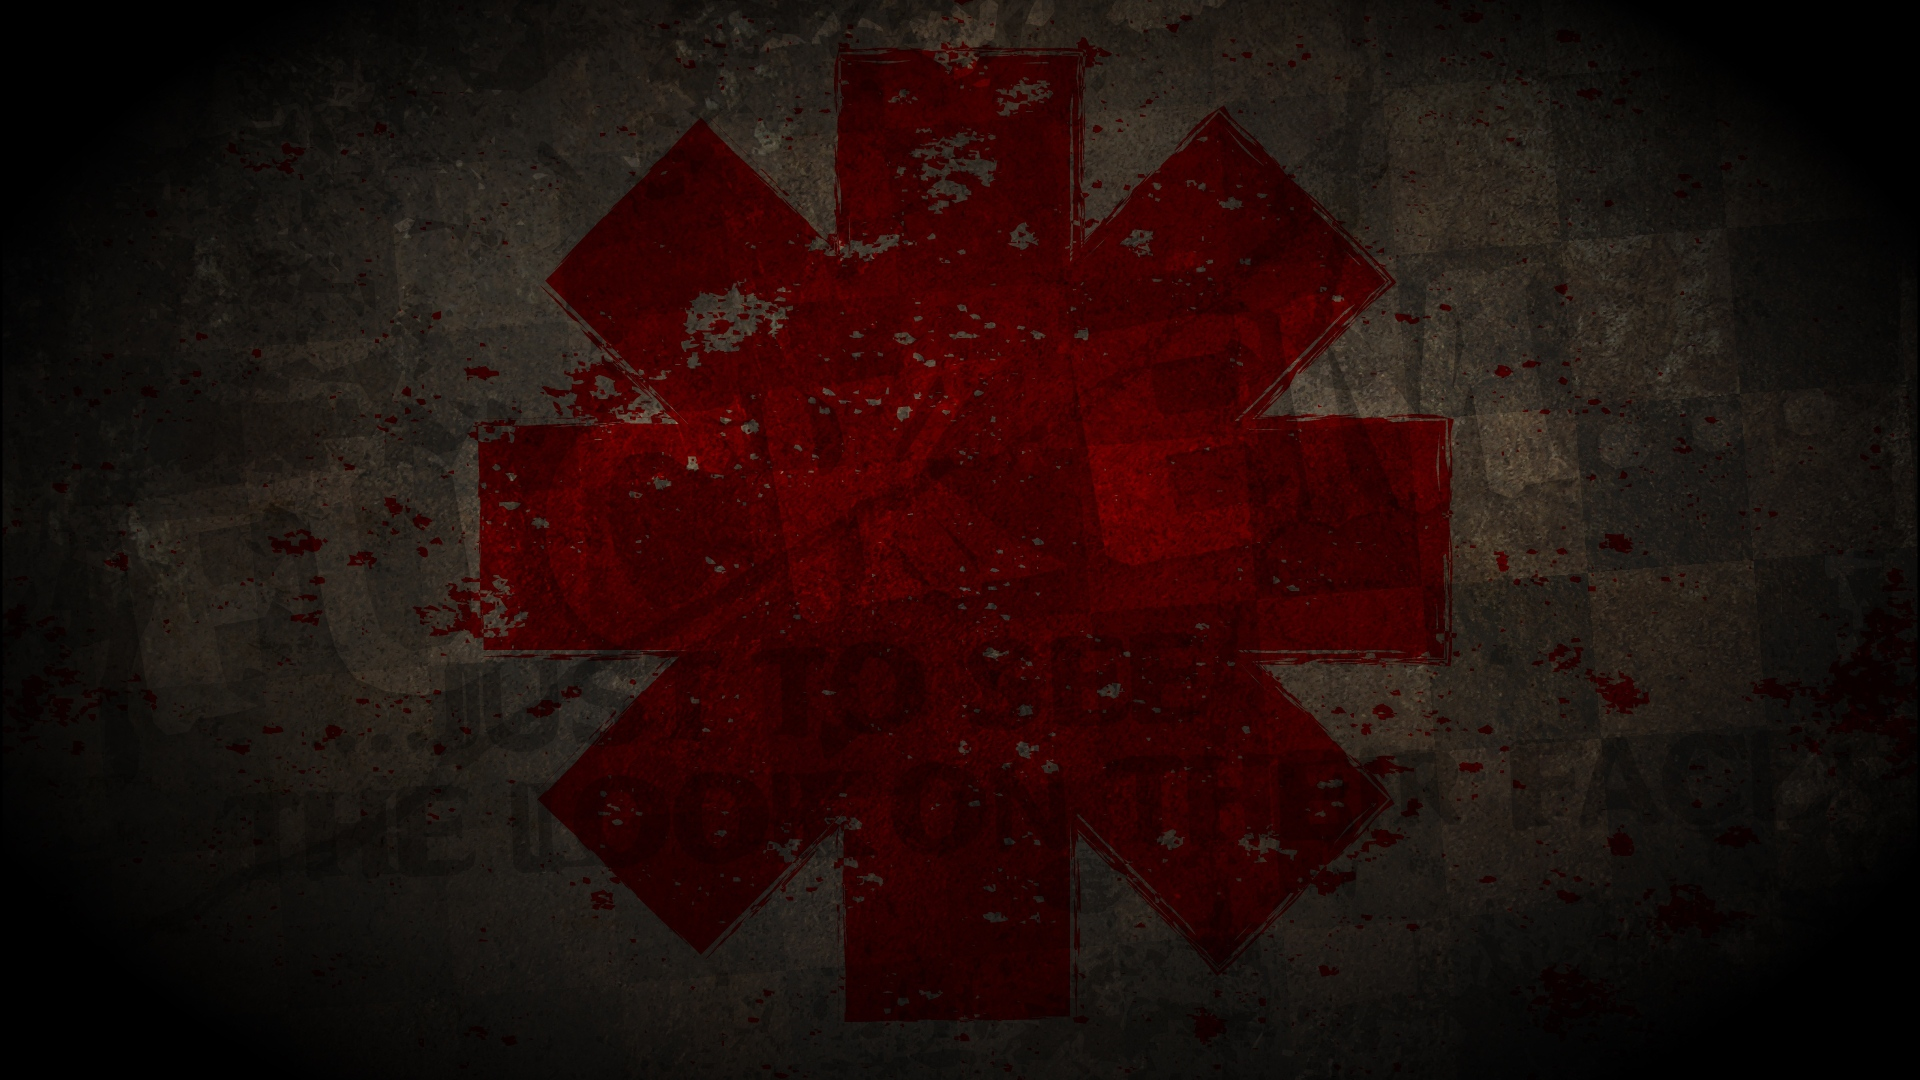 Download wallpaper 1920x1080 red hot chili peppers symbol red hot chili peppers symbol graphics biocorpaavc